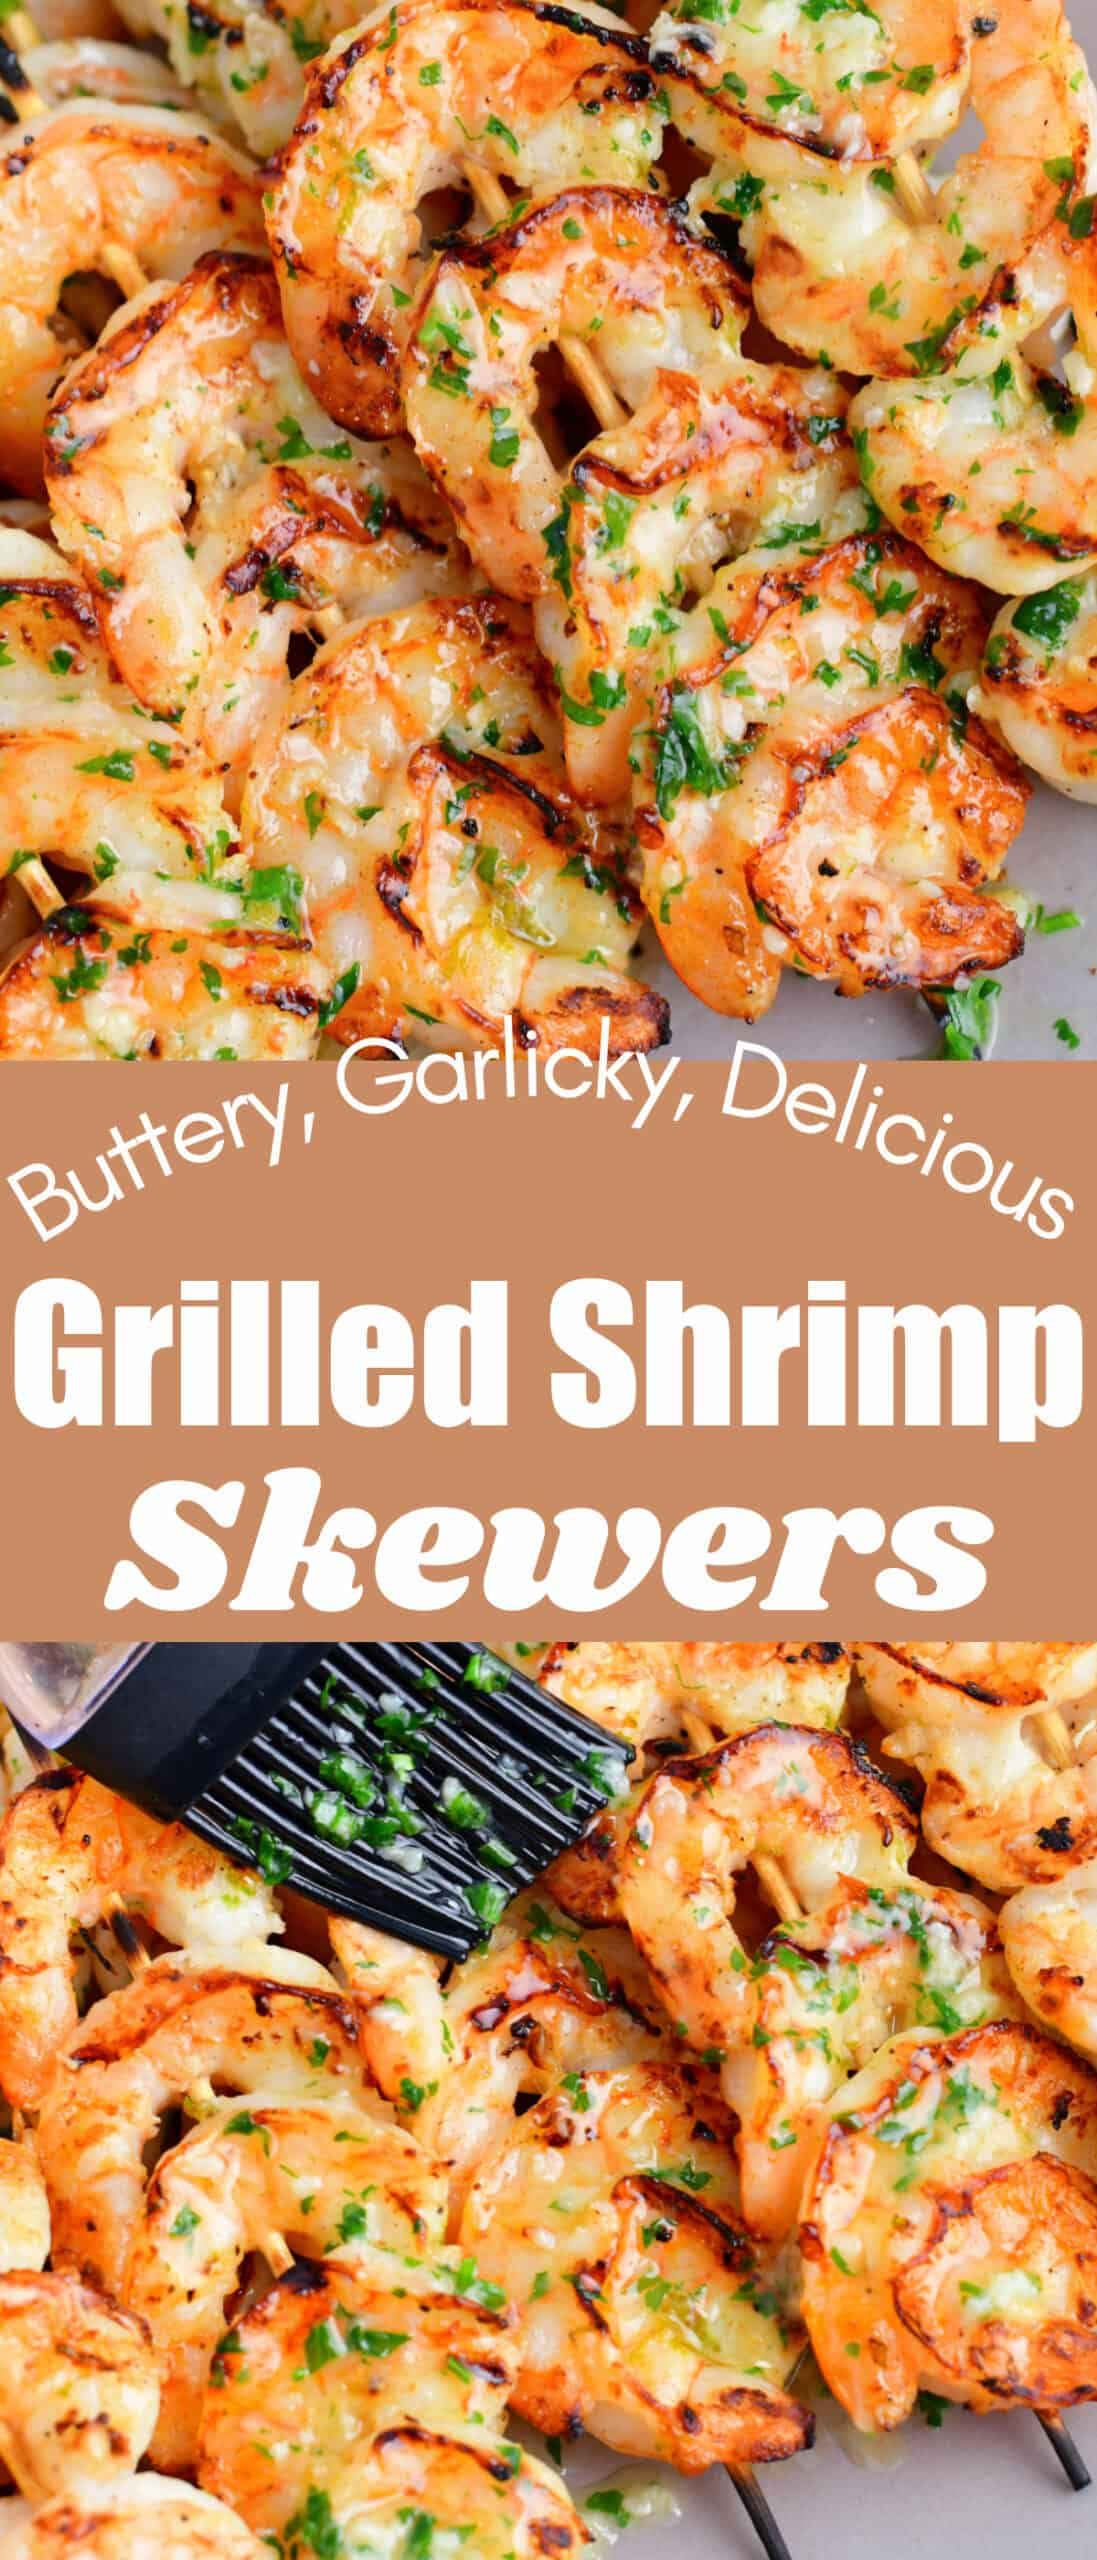 title collage of two closeup images of grilled shrimp on skewers